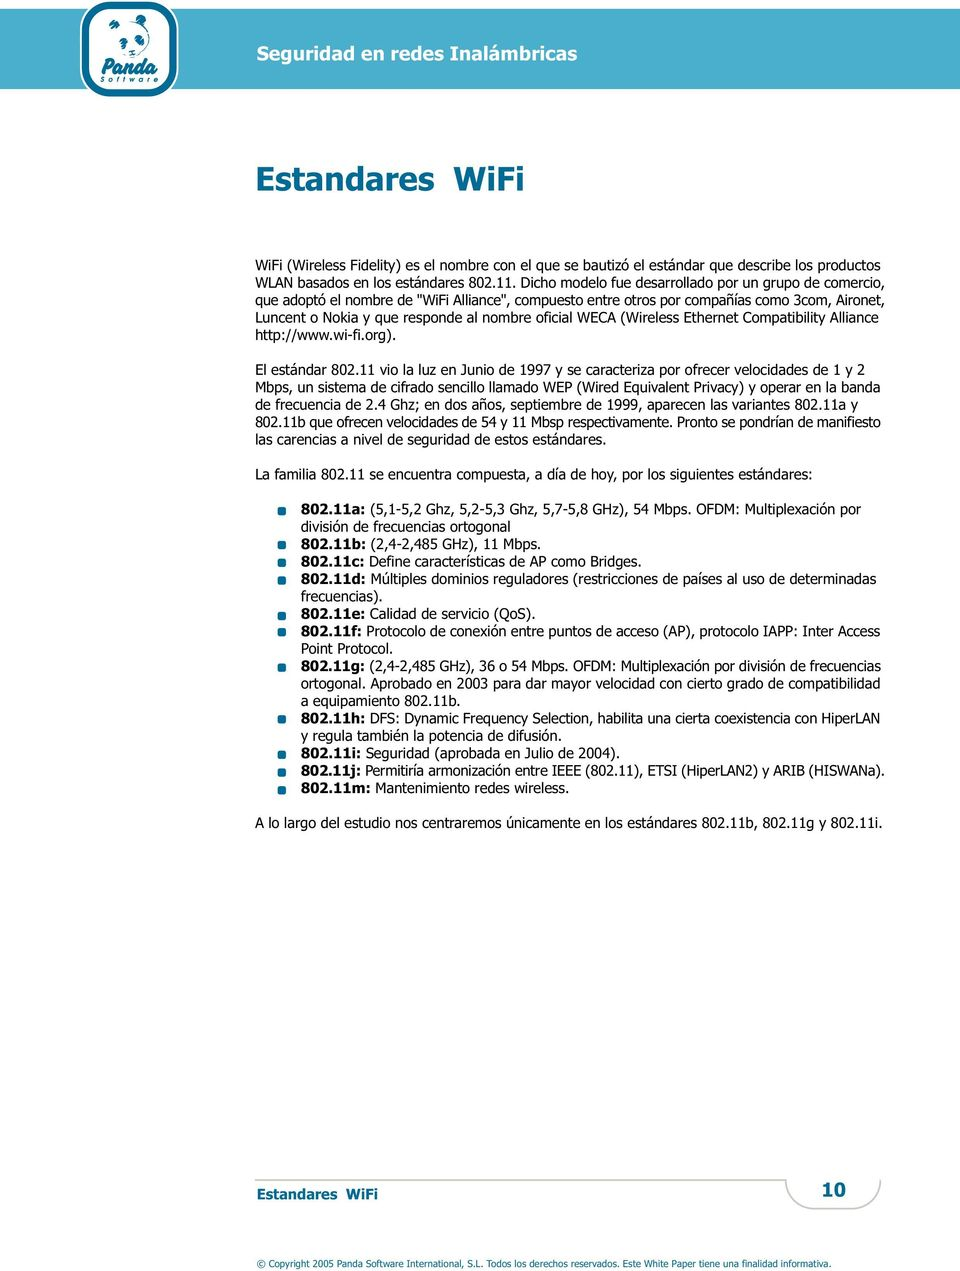 oficial WECA (Wireless Ethernet Compatibility Alliance http://www.wi-fi.org). El estándar 802.